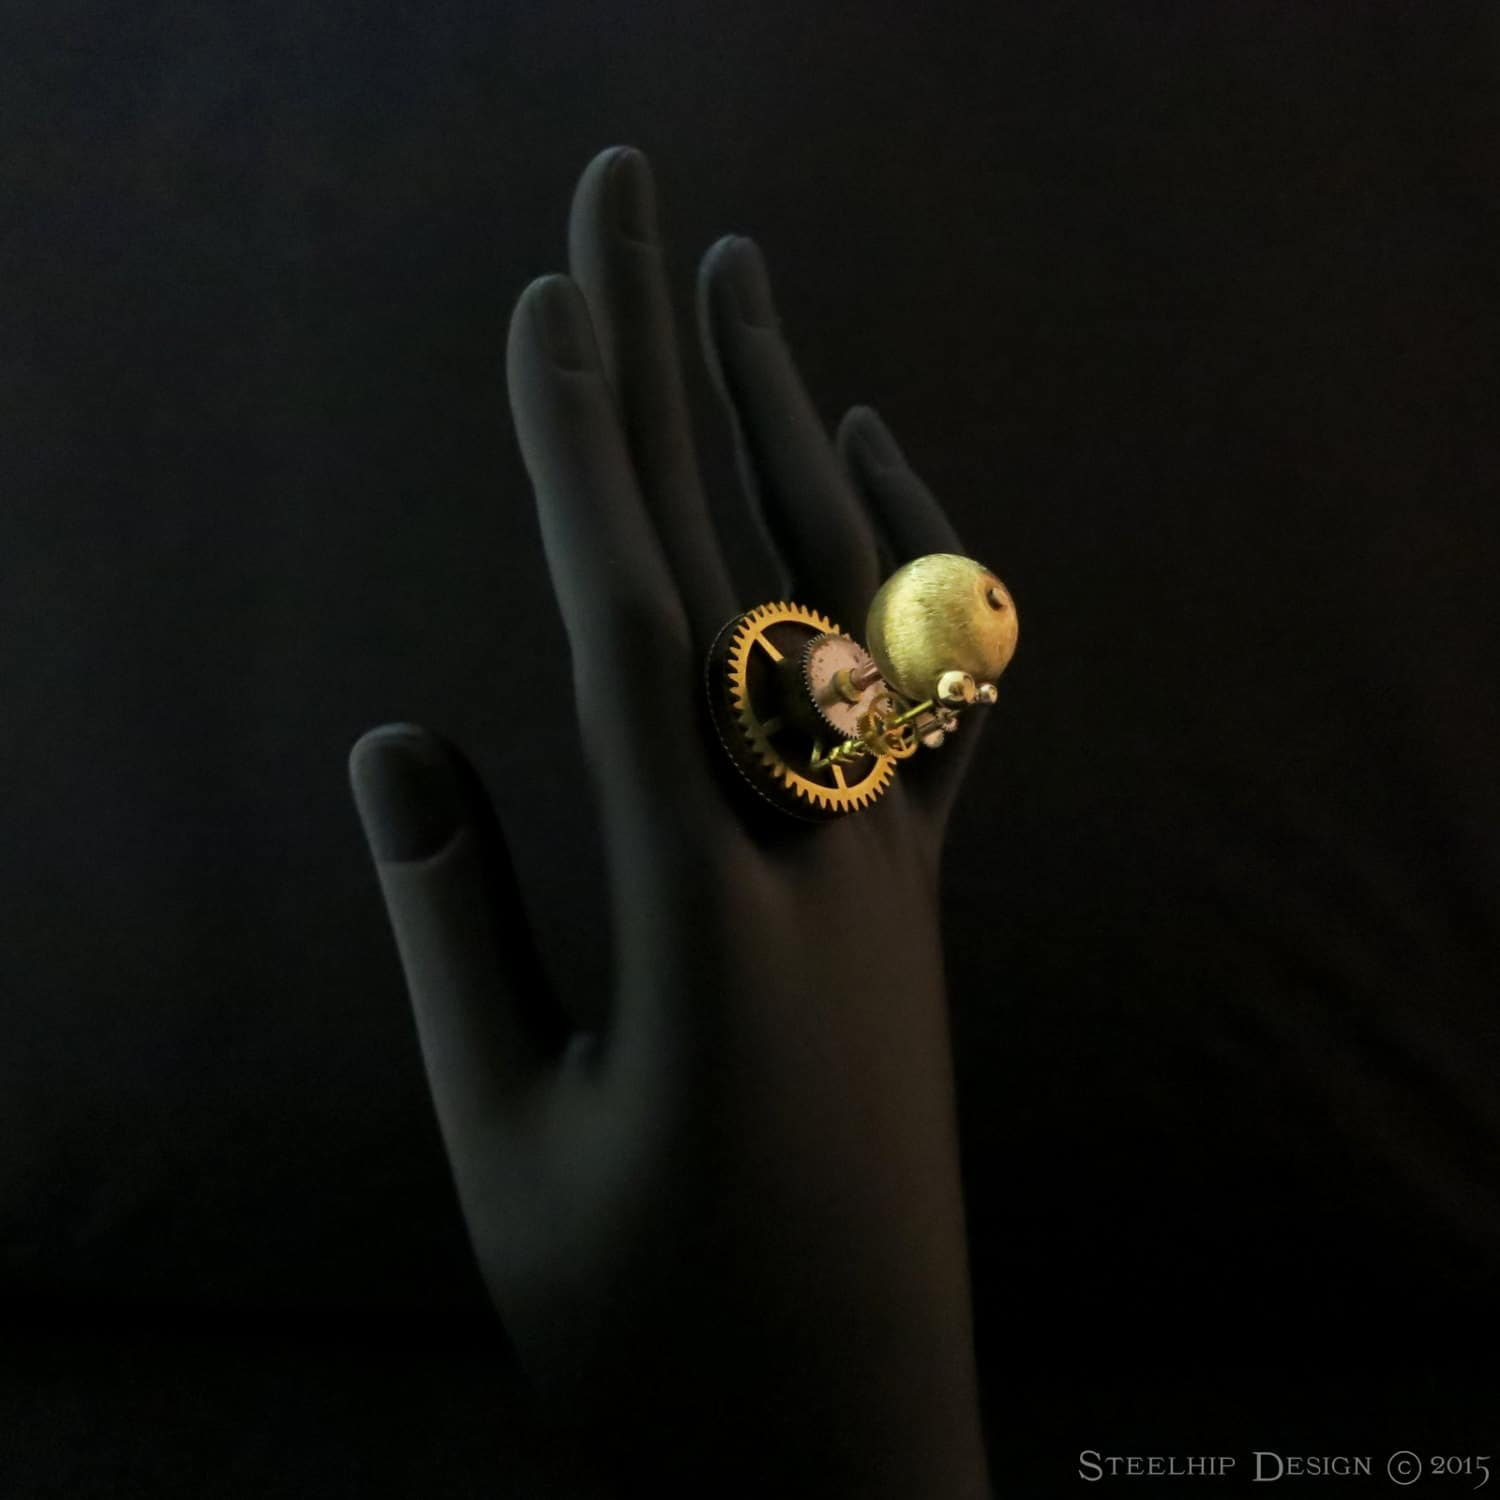 image of Planets ring by Steelhip Design | TheGeekPages.com